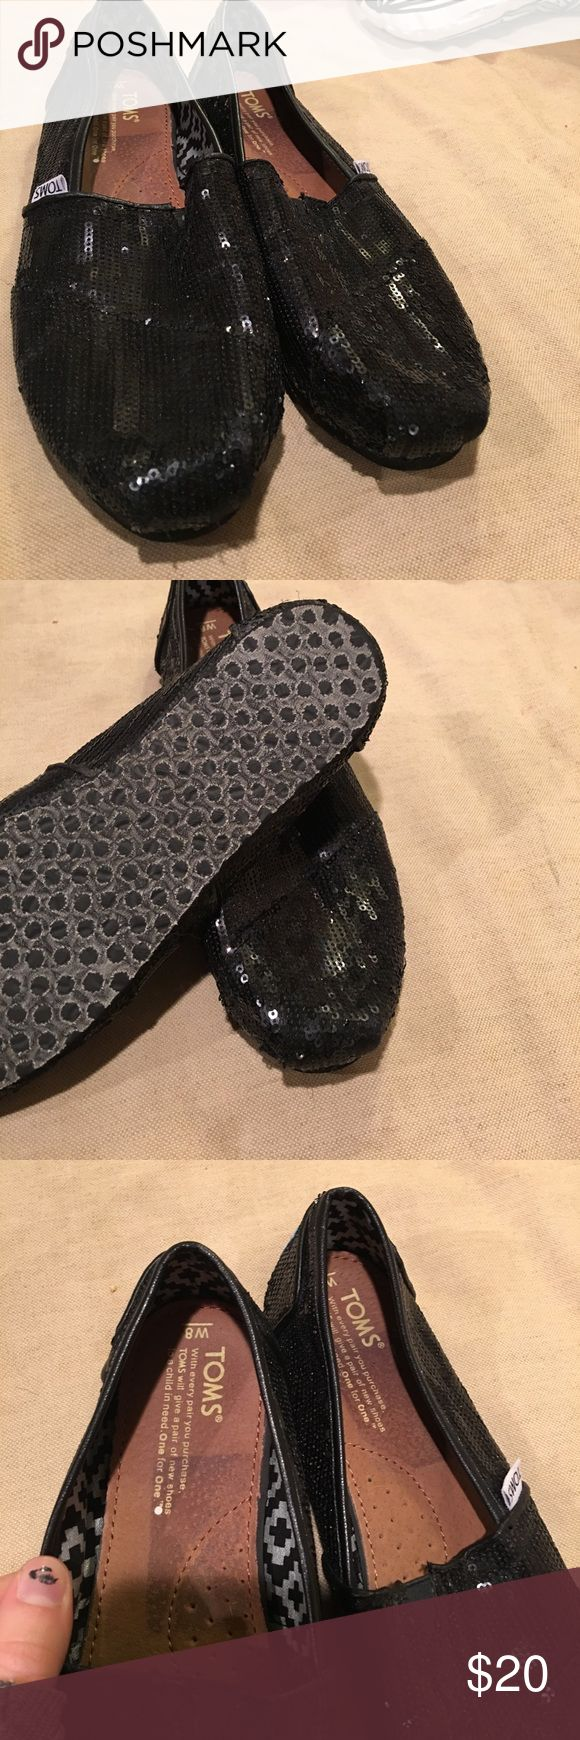 BLACK GLITTER TOMS👣 I'm selling this pair of black glitter toms! They are fairly new and as you can see in the fourth picture they do have some missing on the toe, not very noticeable though! They are a size 8! Happy poshing 🖤 TOMS Shoes Flats & Loafers